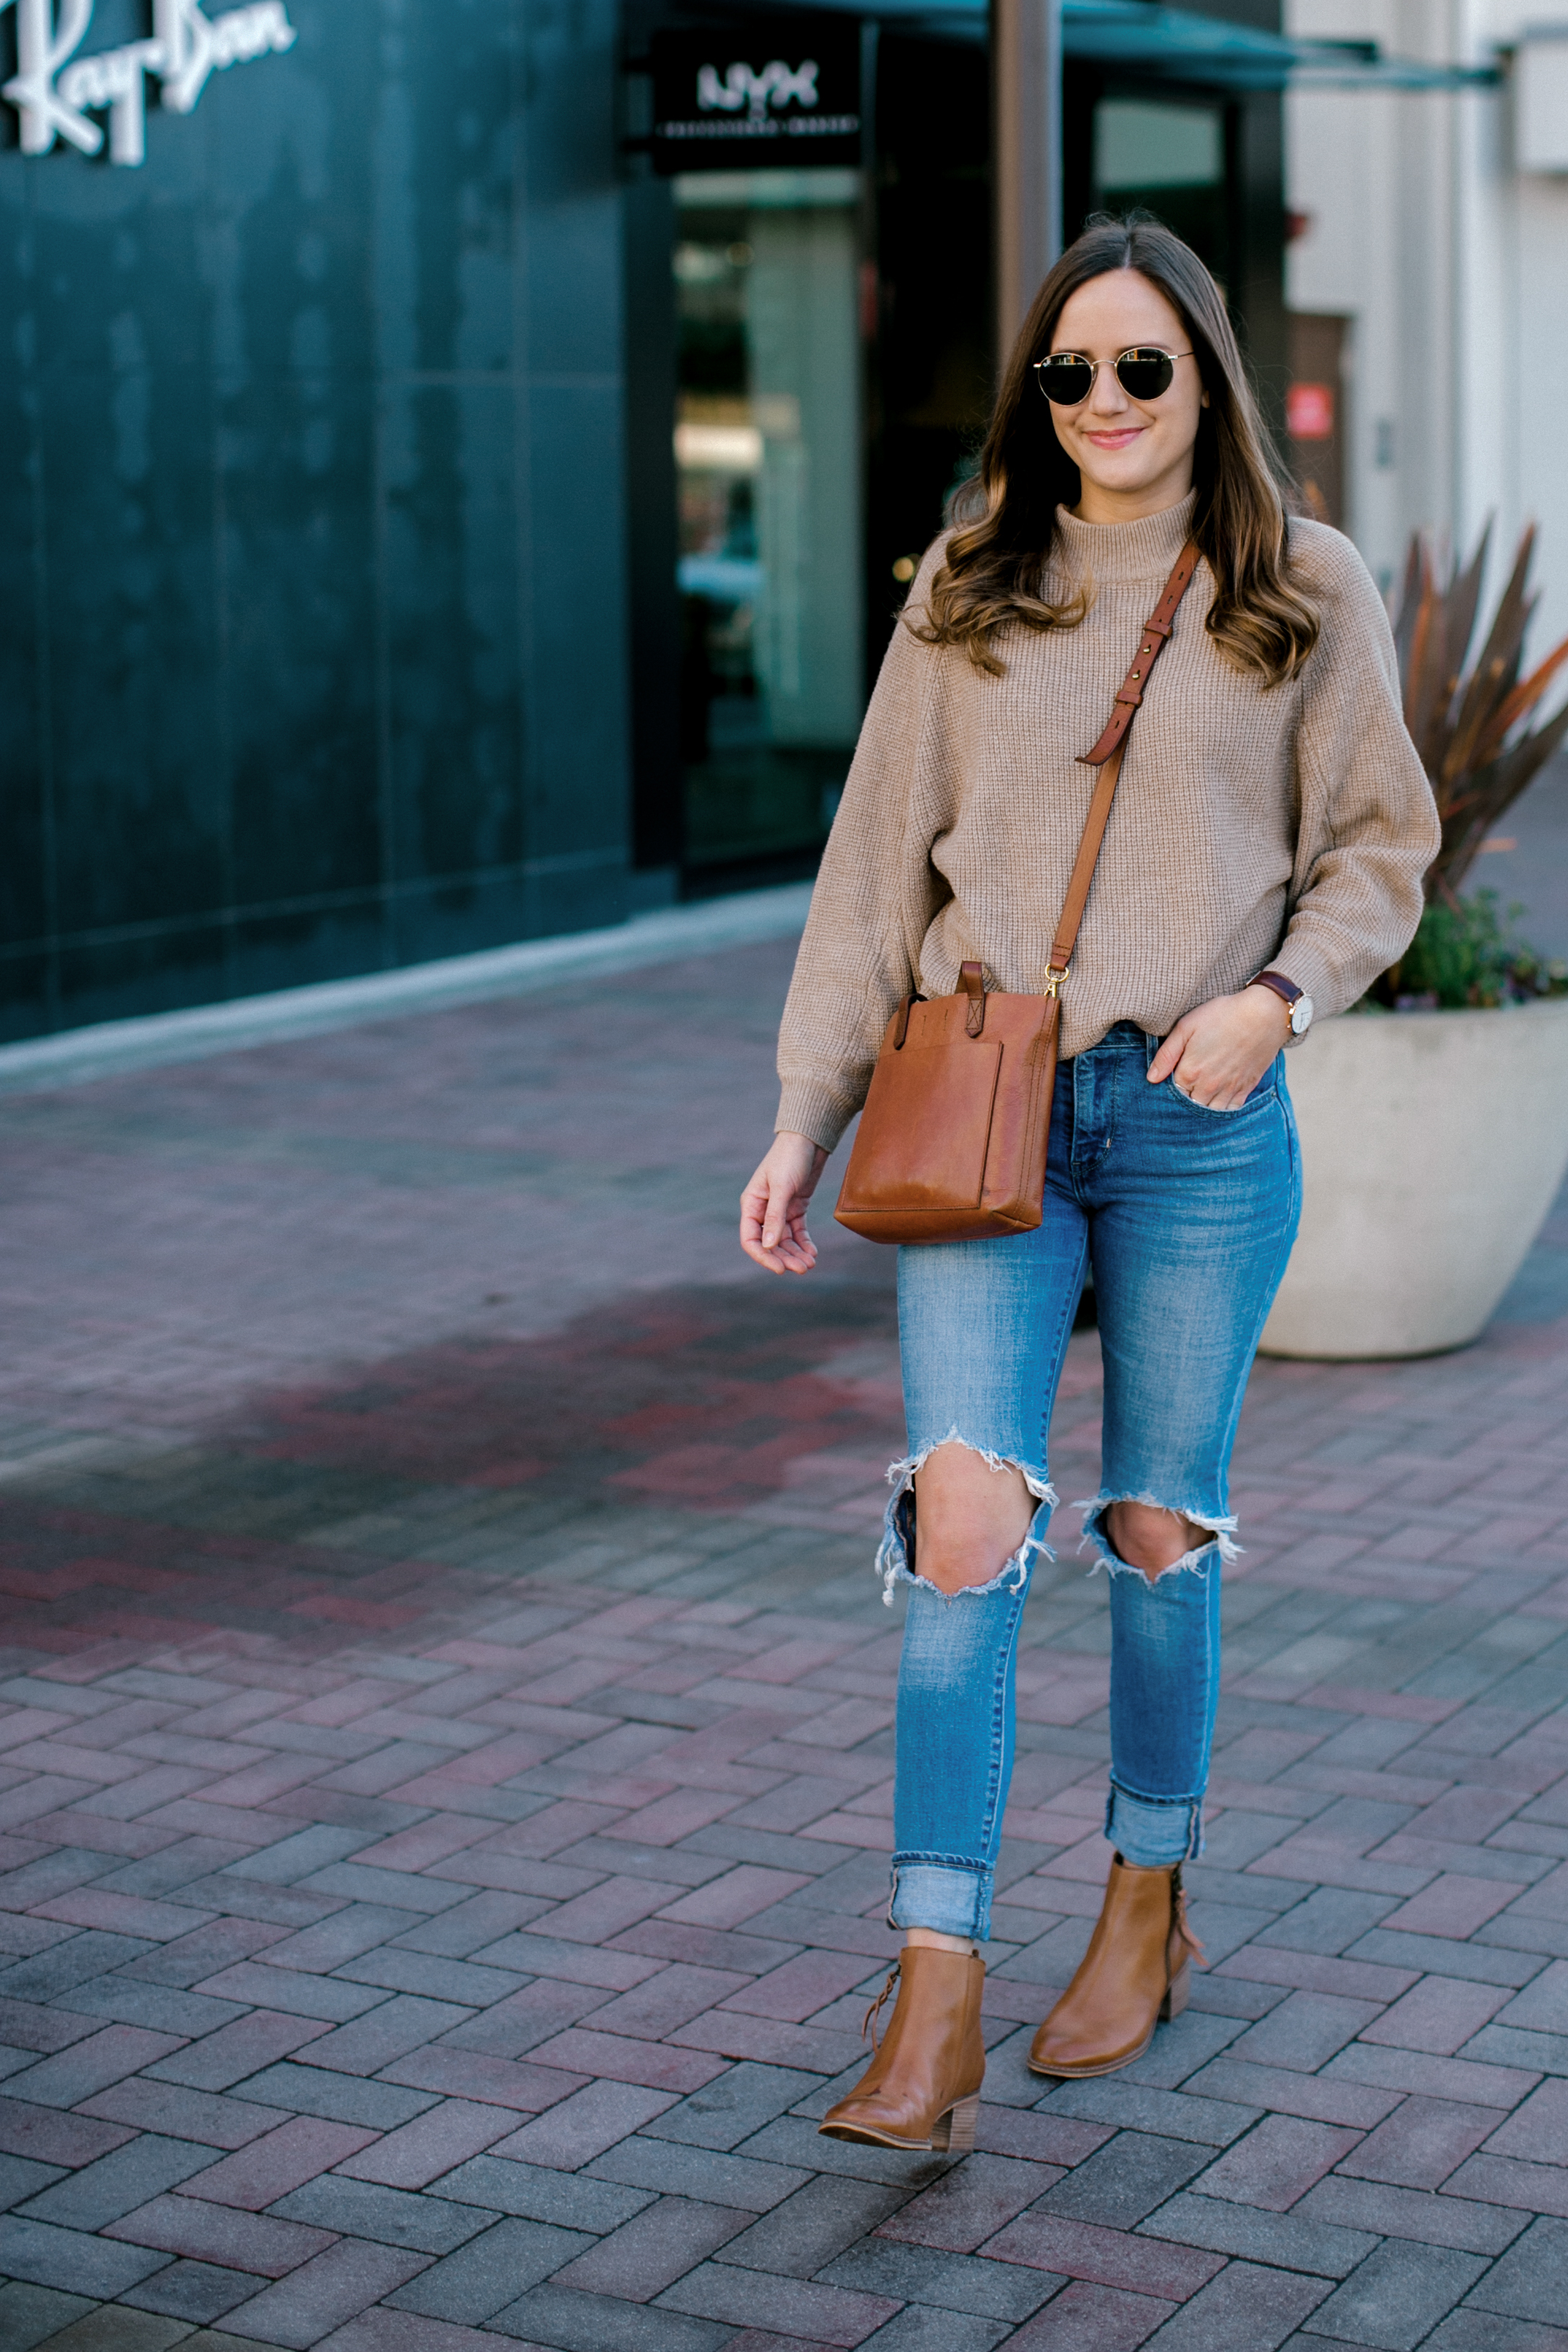 Shop the Look Below.  Lucky Brand Sweater  |  Levi's Jeans  |  Nordstrom Boots  |  Madewell Bag  |  Ray-Ban Sunglasses